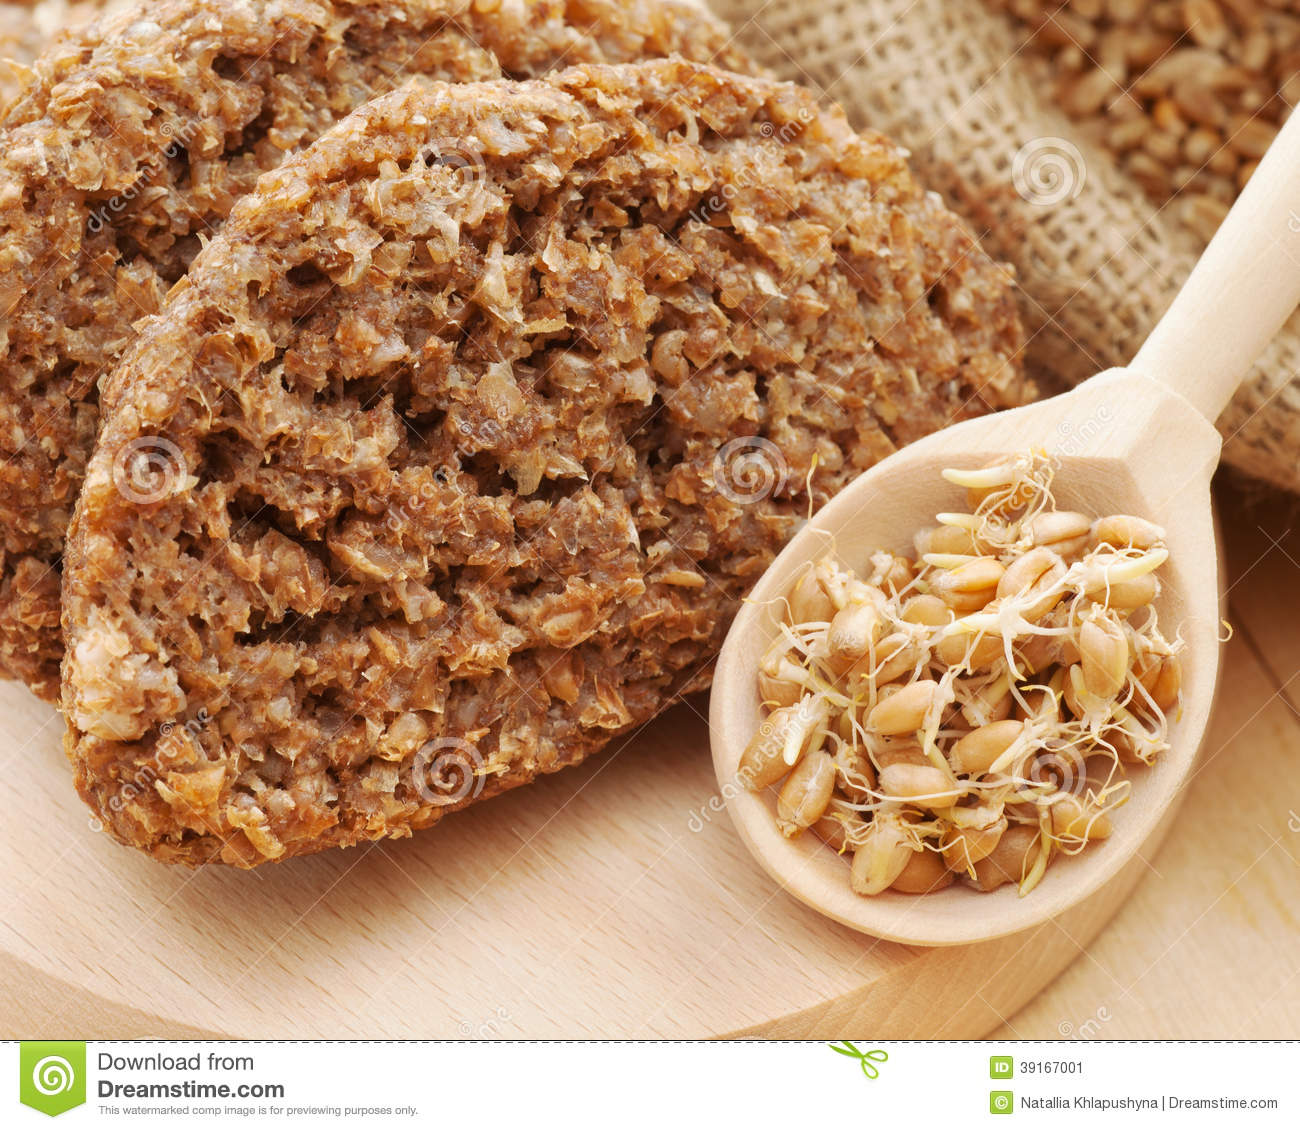 Bread from wheat sprouts and sprouted seeds